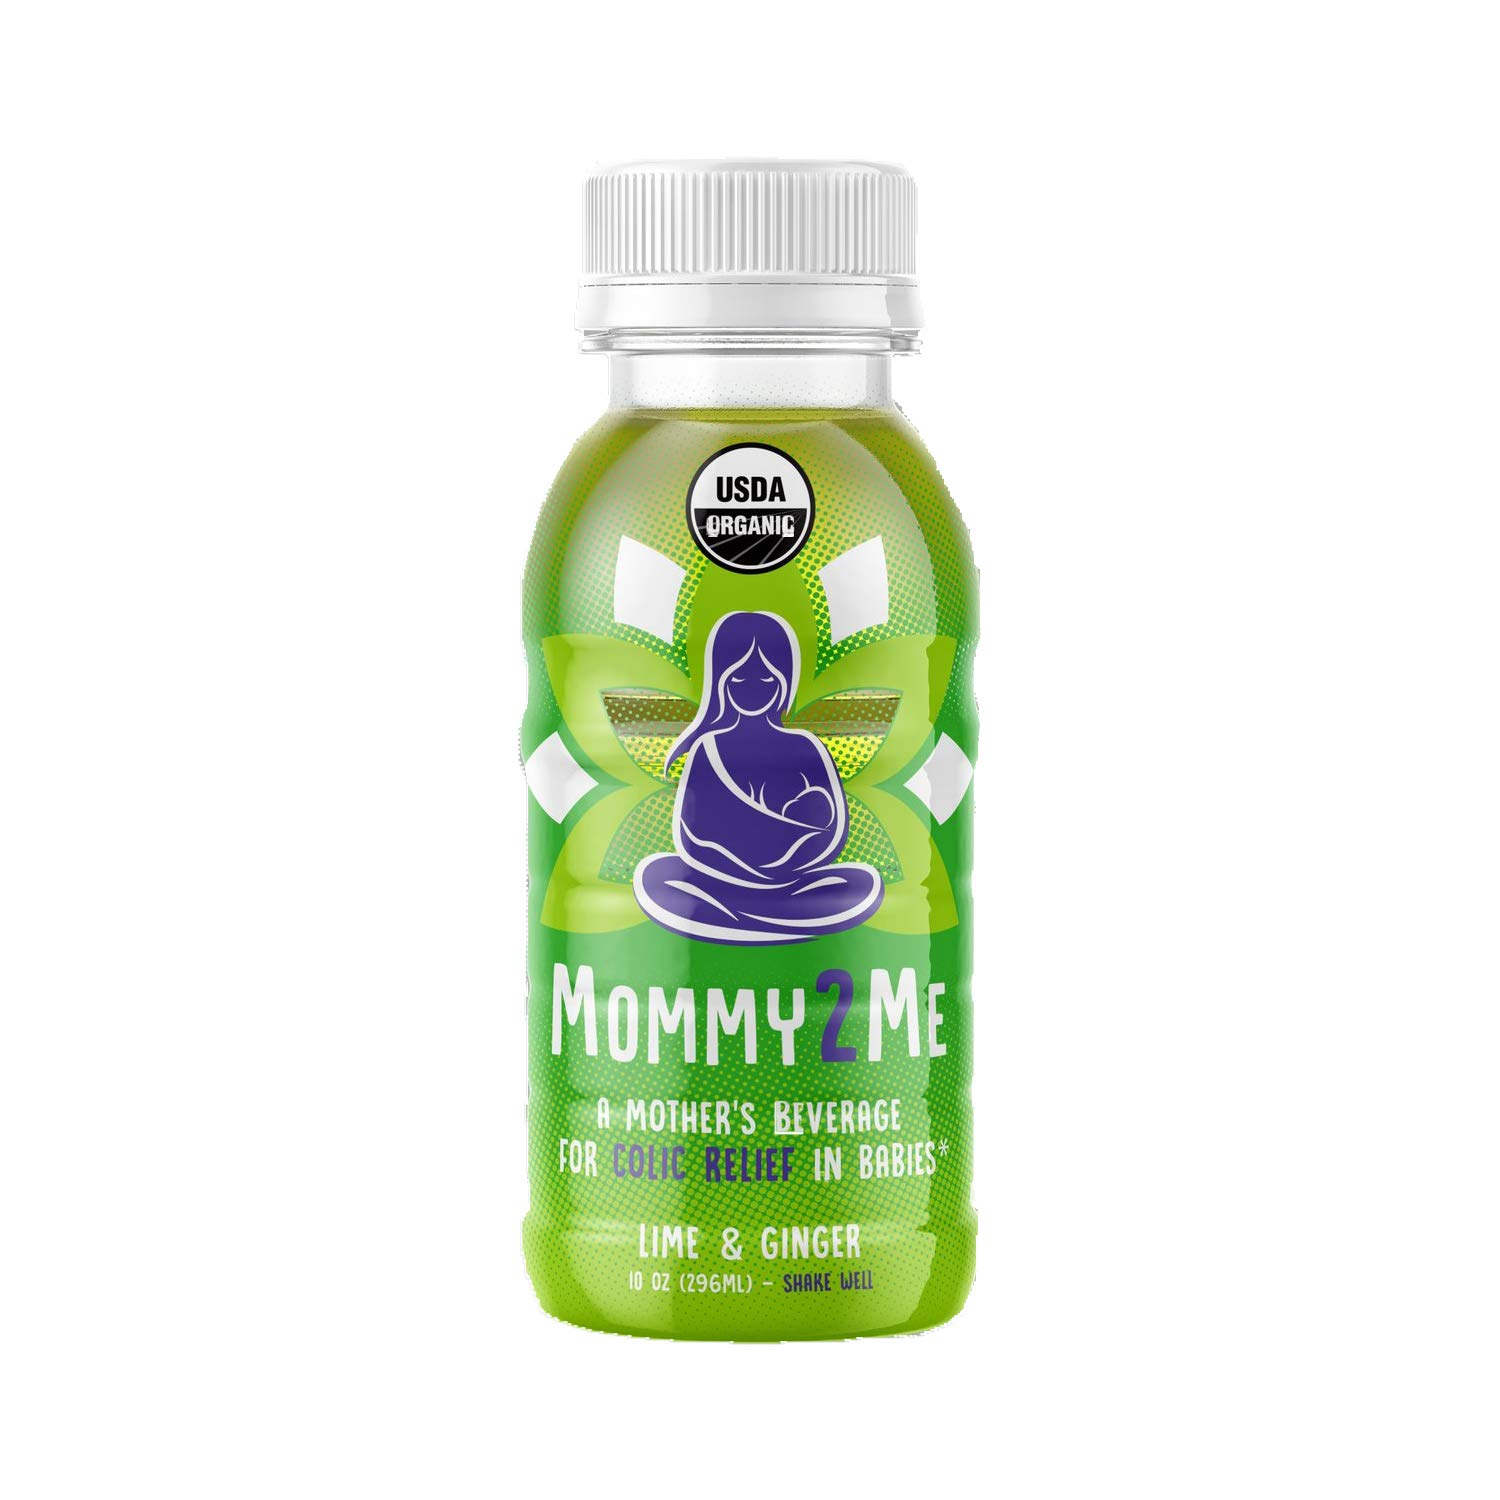 Mommy2Me - A Mothers Beverage for Colic Relief in Babies. Help Alleviate Colic, Gas, Fussiness, Through The Mothers Breast Milk. All Organic and Made in The U.S.A, Full Case (12 Pack) by Mommy2Me